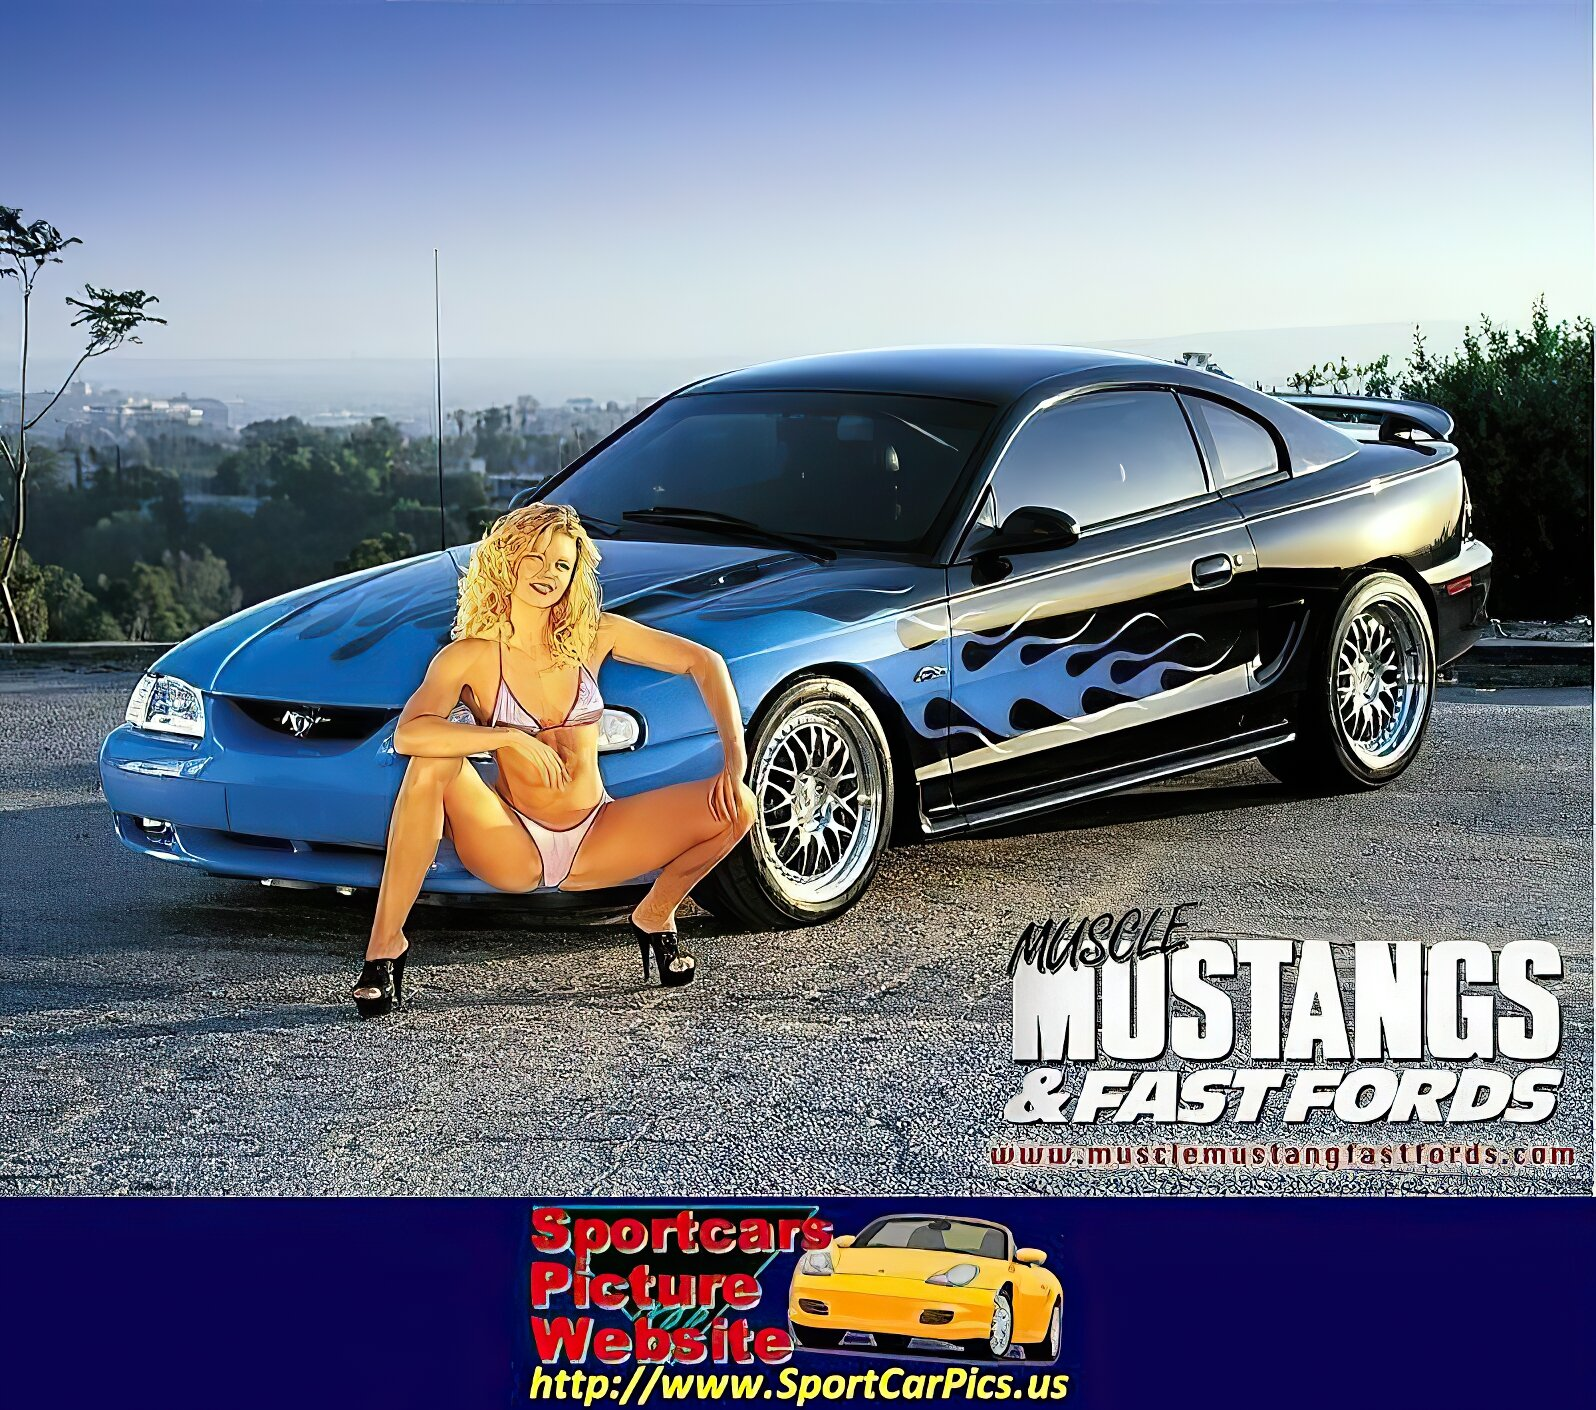 Ford Mustang - ID: 17314